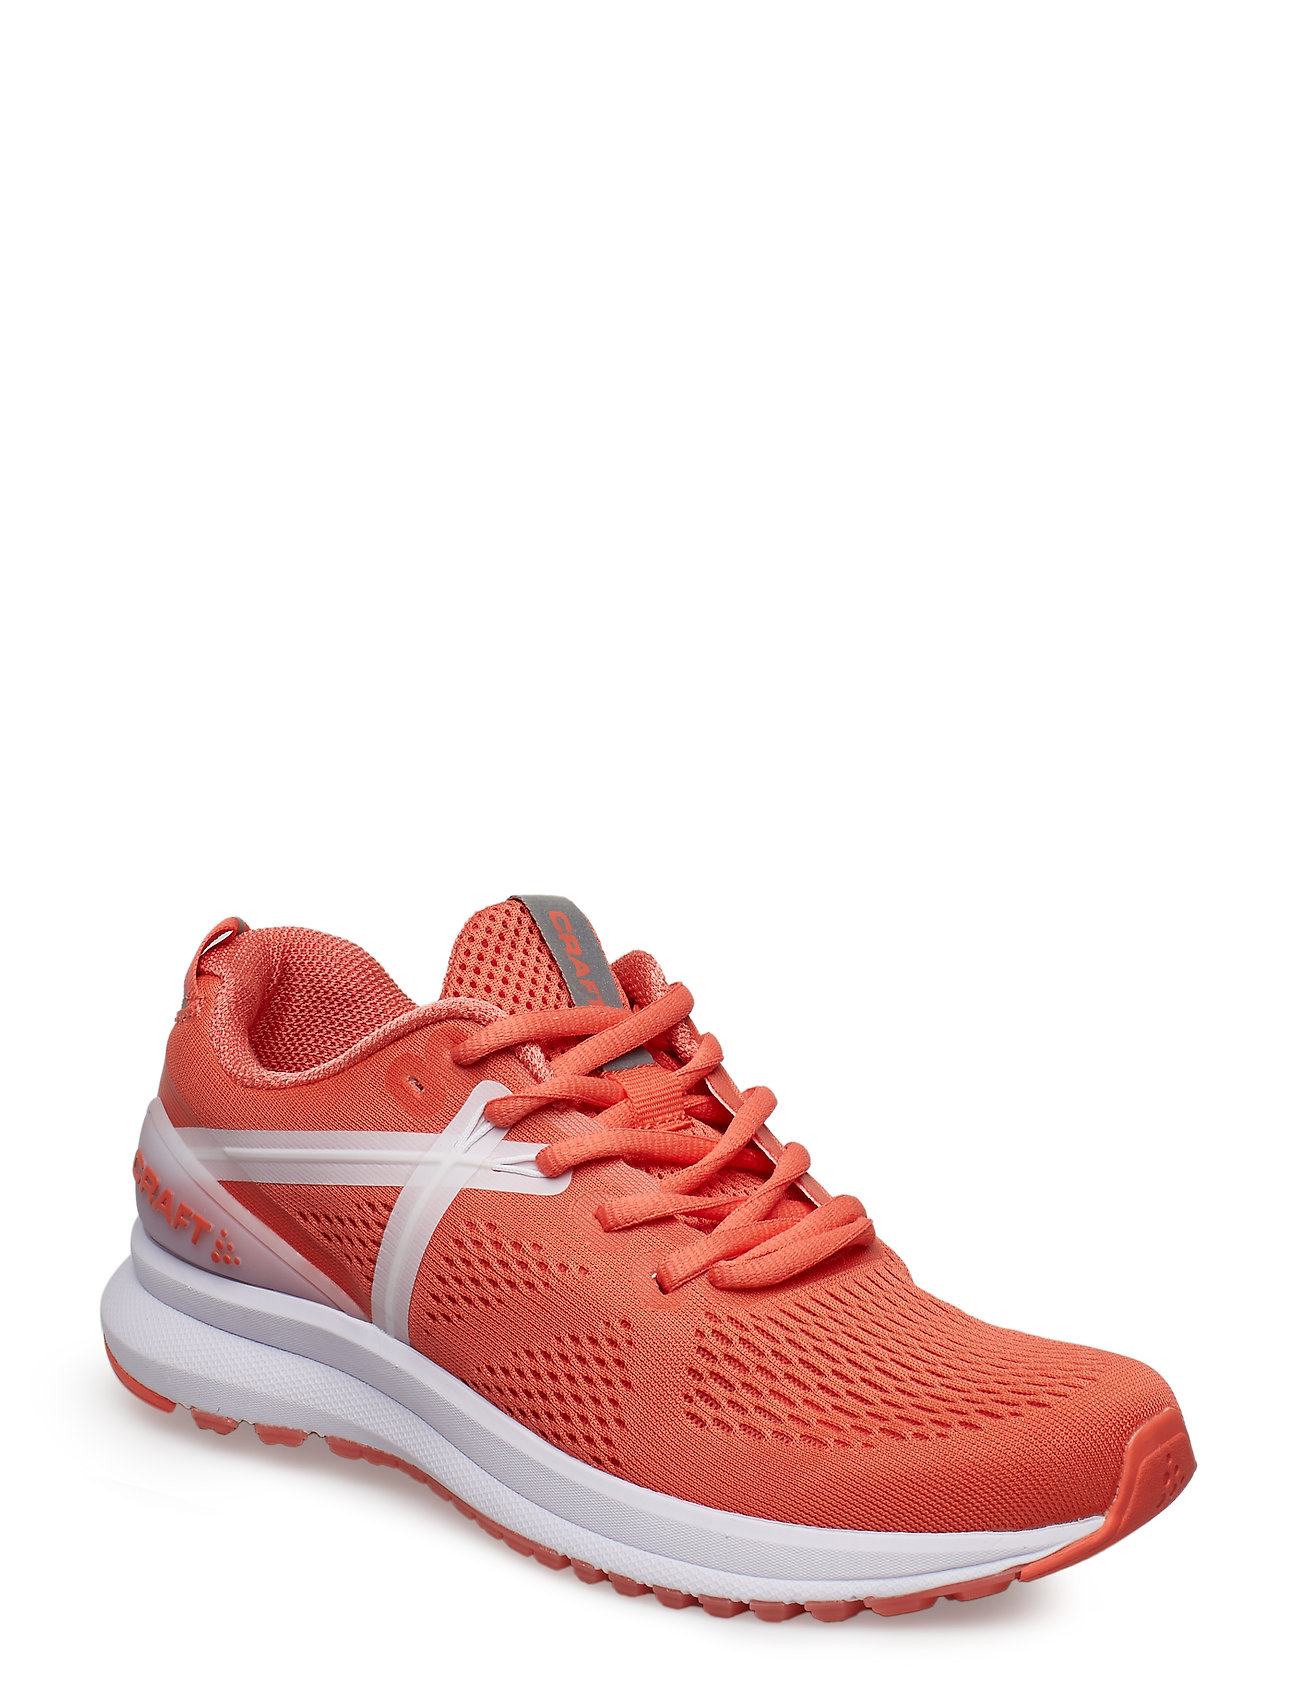 Image of Shoe X165 Engineered W Shoes Sport Shoes Running Shoes Rød Craft (3452123753)